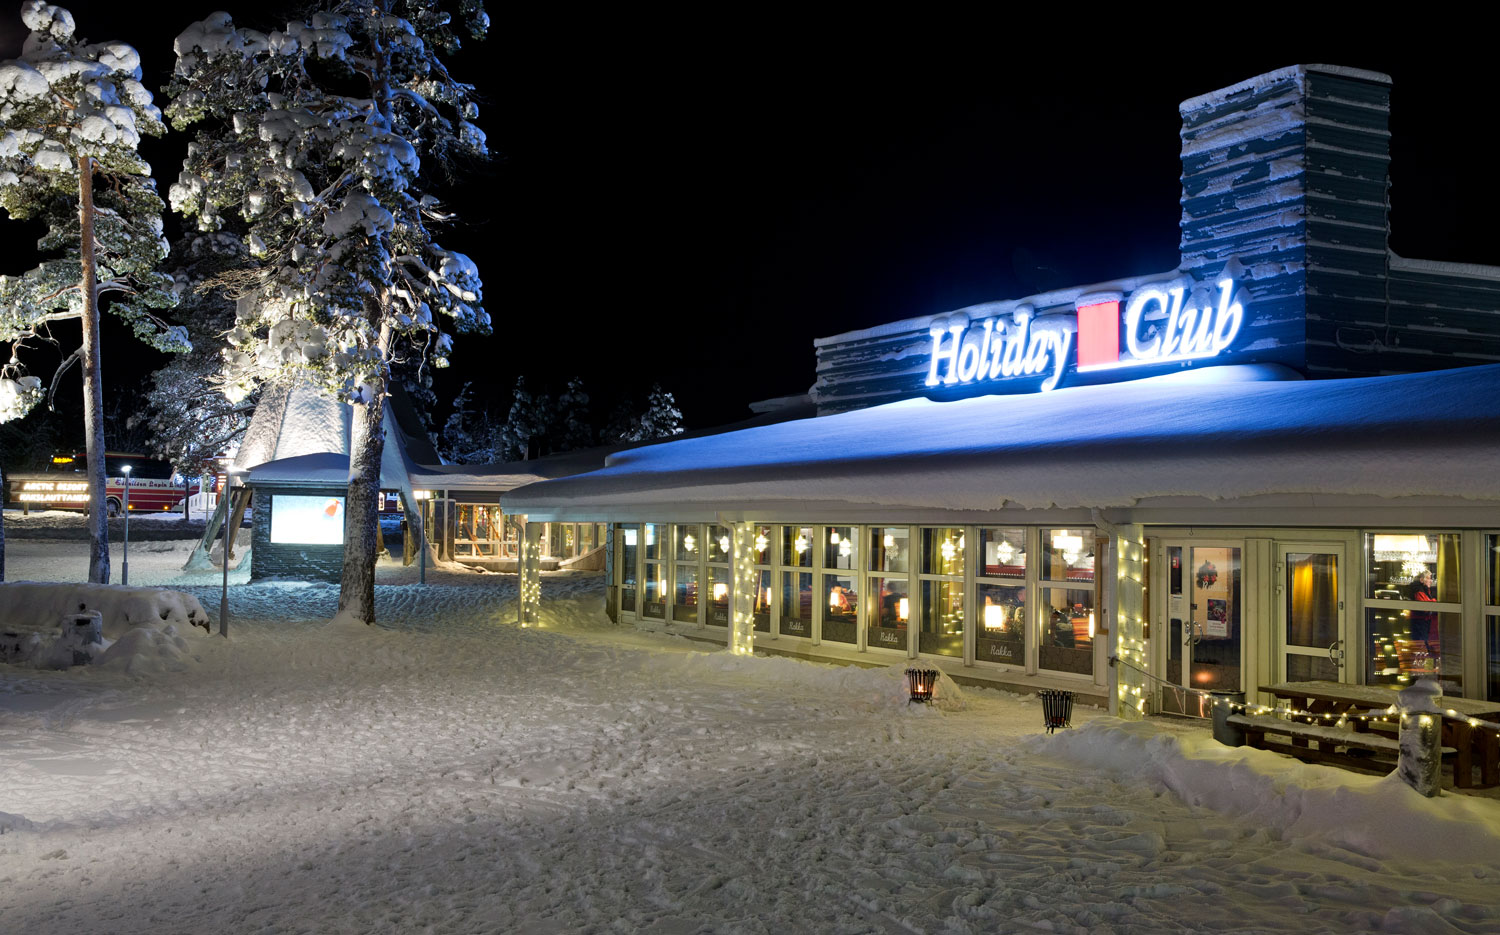 Hotel Holiday_Club_External_front.jpg